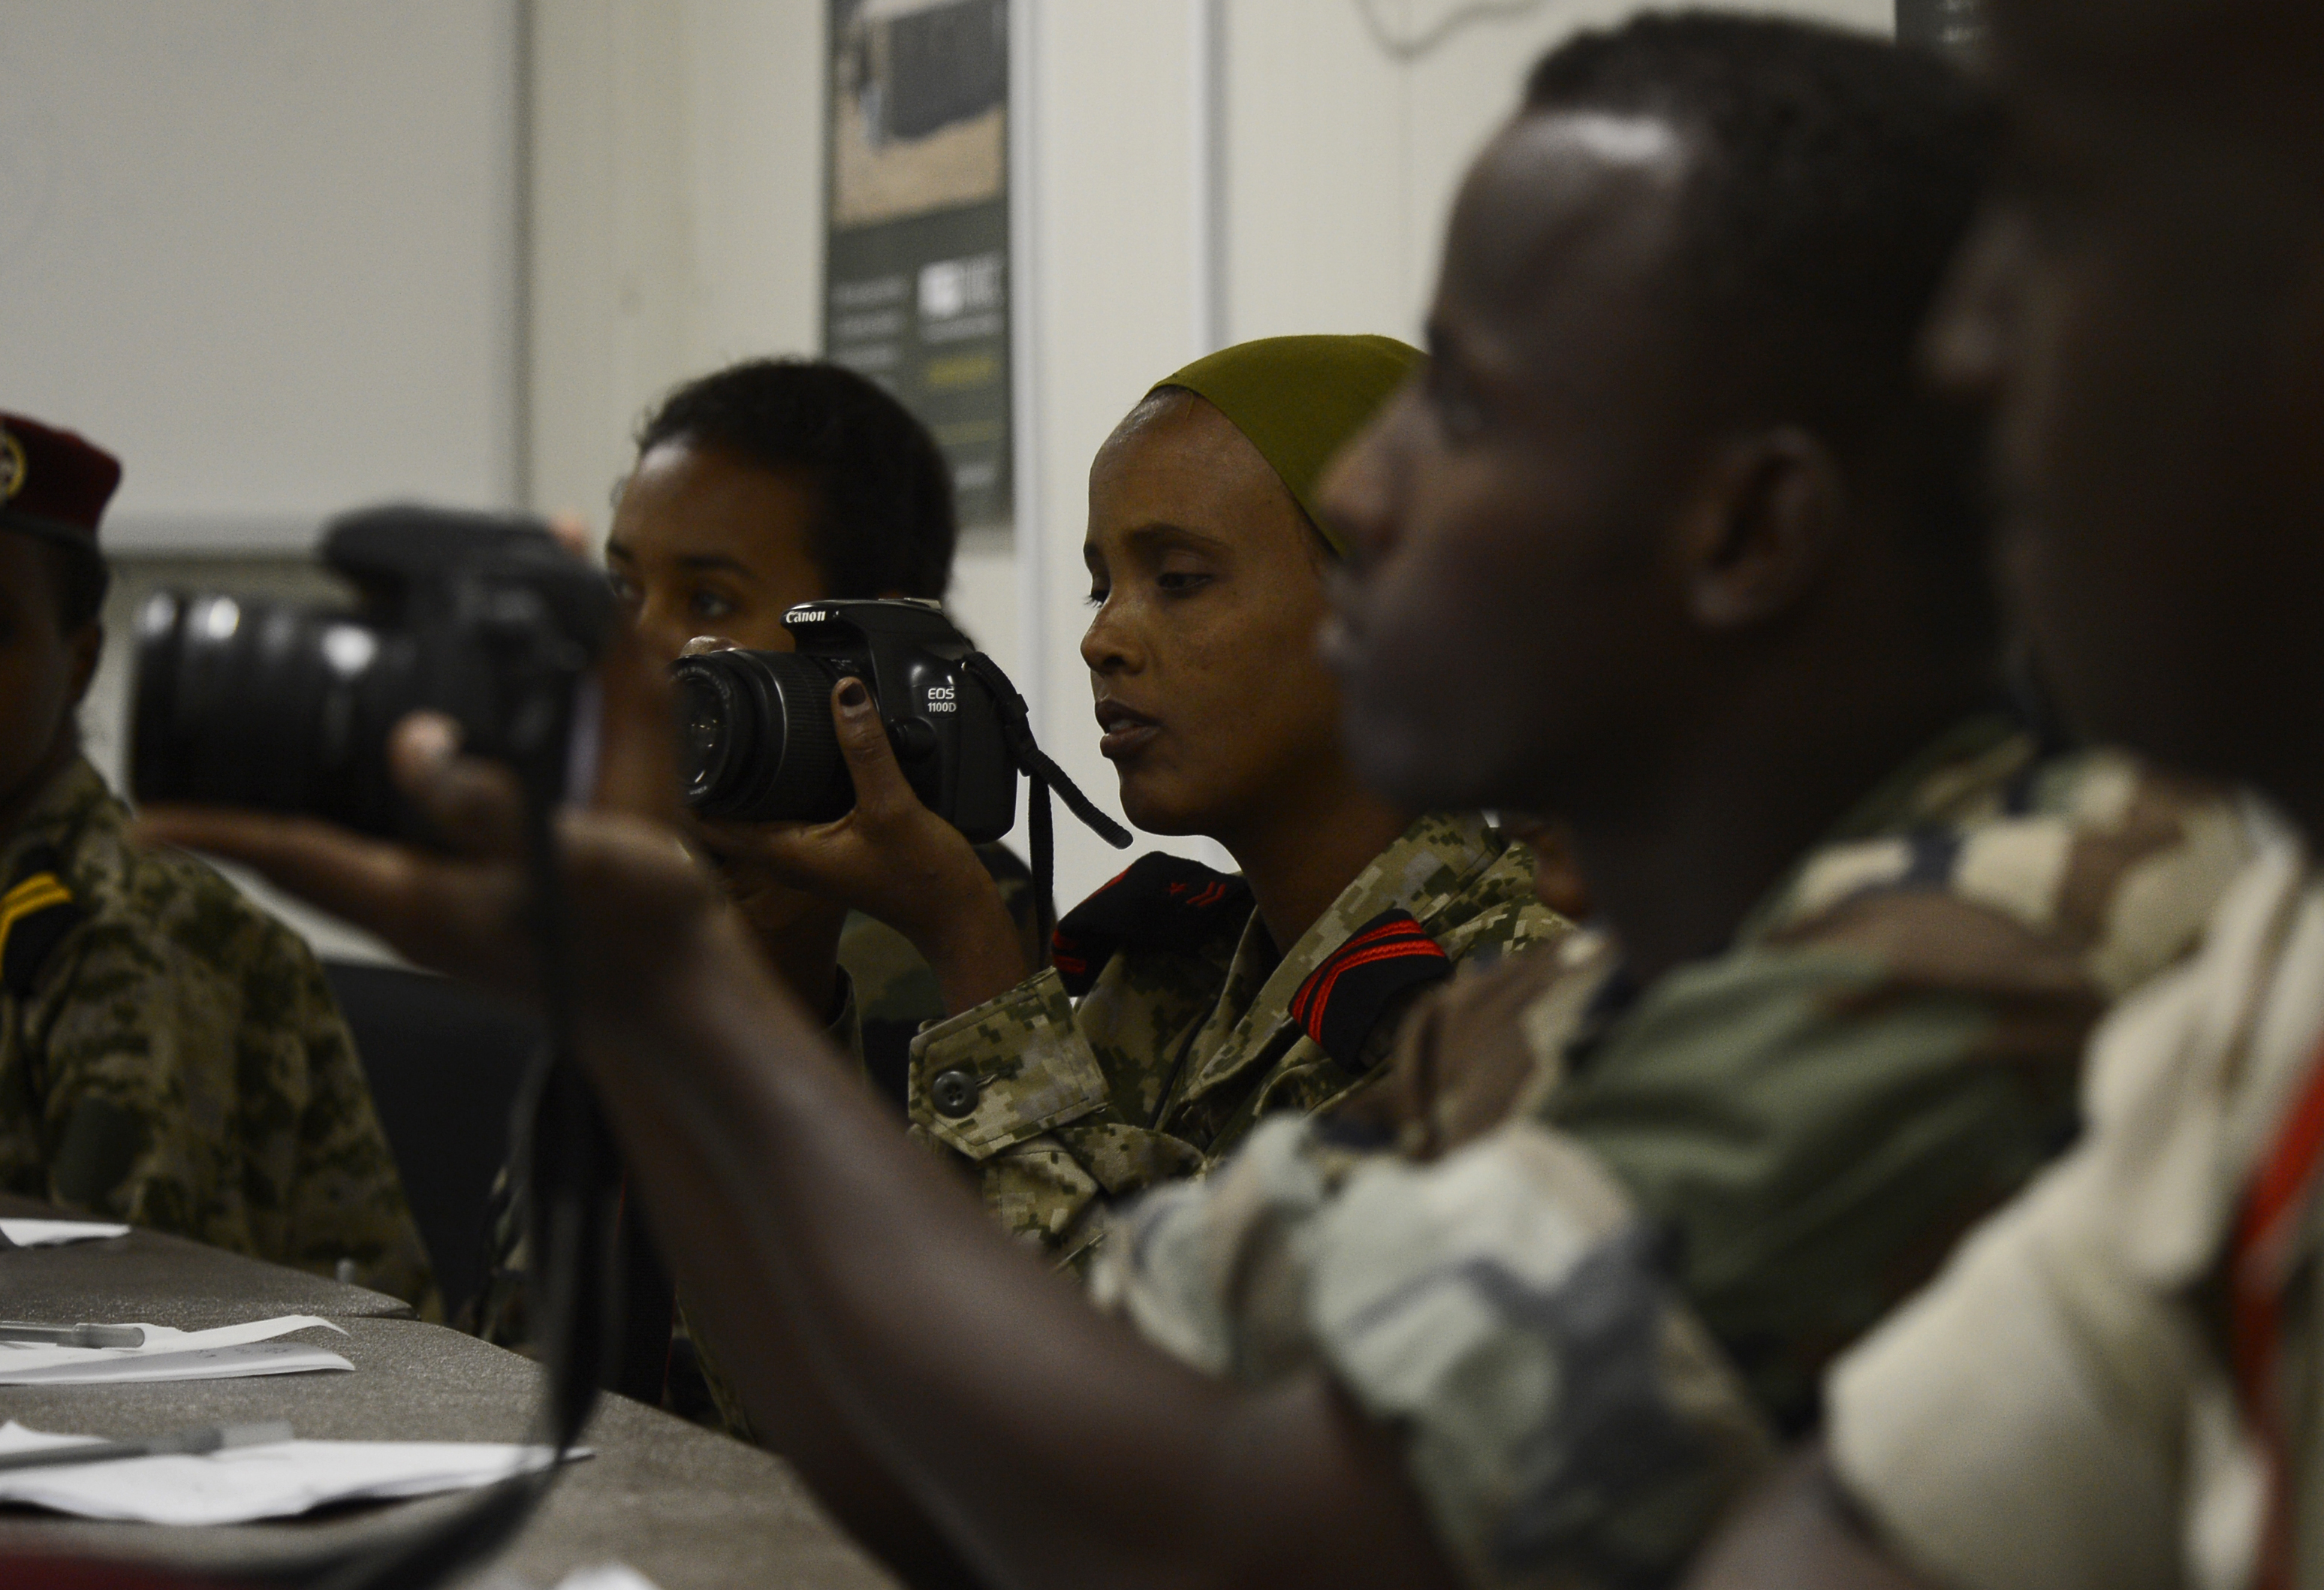 Members of the Djibouti Armed Forces (FAD) look through settings on their cameras Dec. 2, 2015, at Camp Lemonnier, Djibouti. The Combined Joint Task Force-Horn of Africa Public Affairs Office worked with eight FAD members to improve their understanding of photo and video techniques and equipment. (U.S. Air Force photo by Senior Airman Peter Thompson)